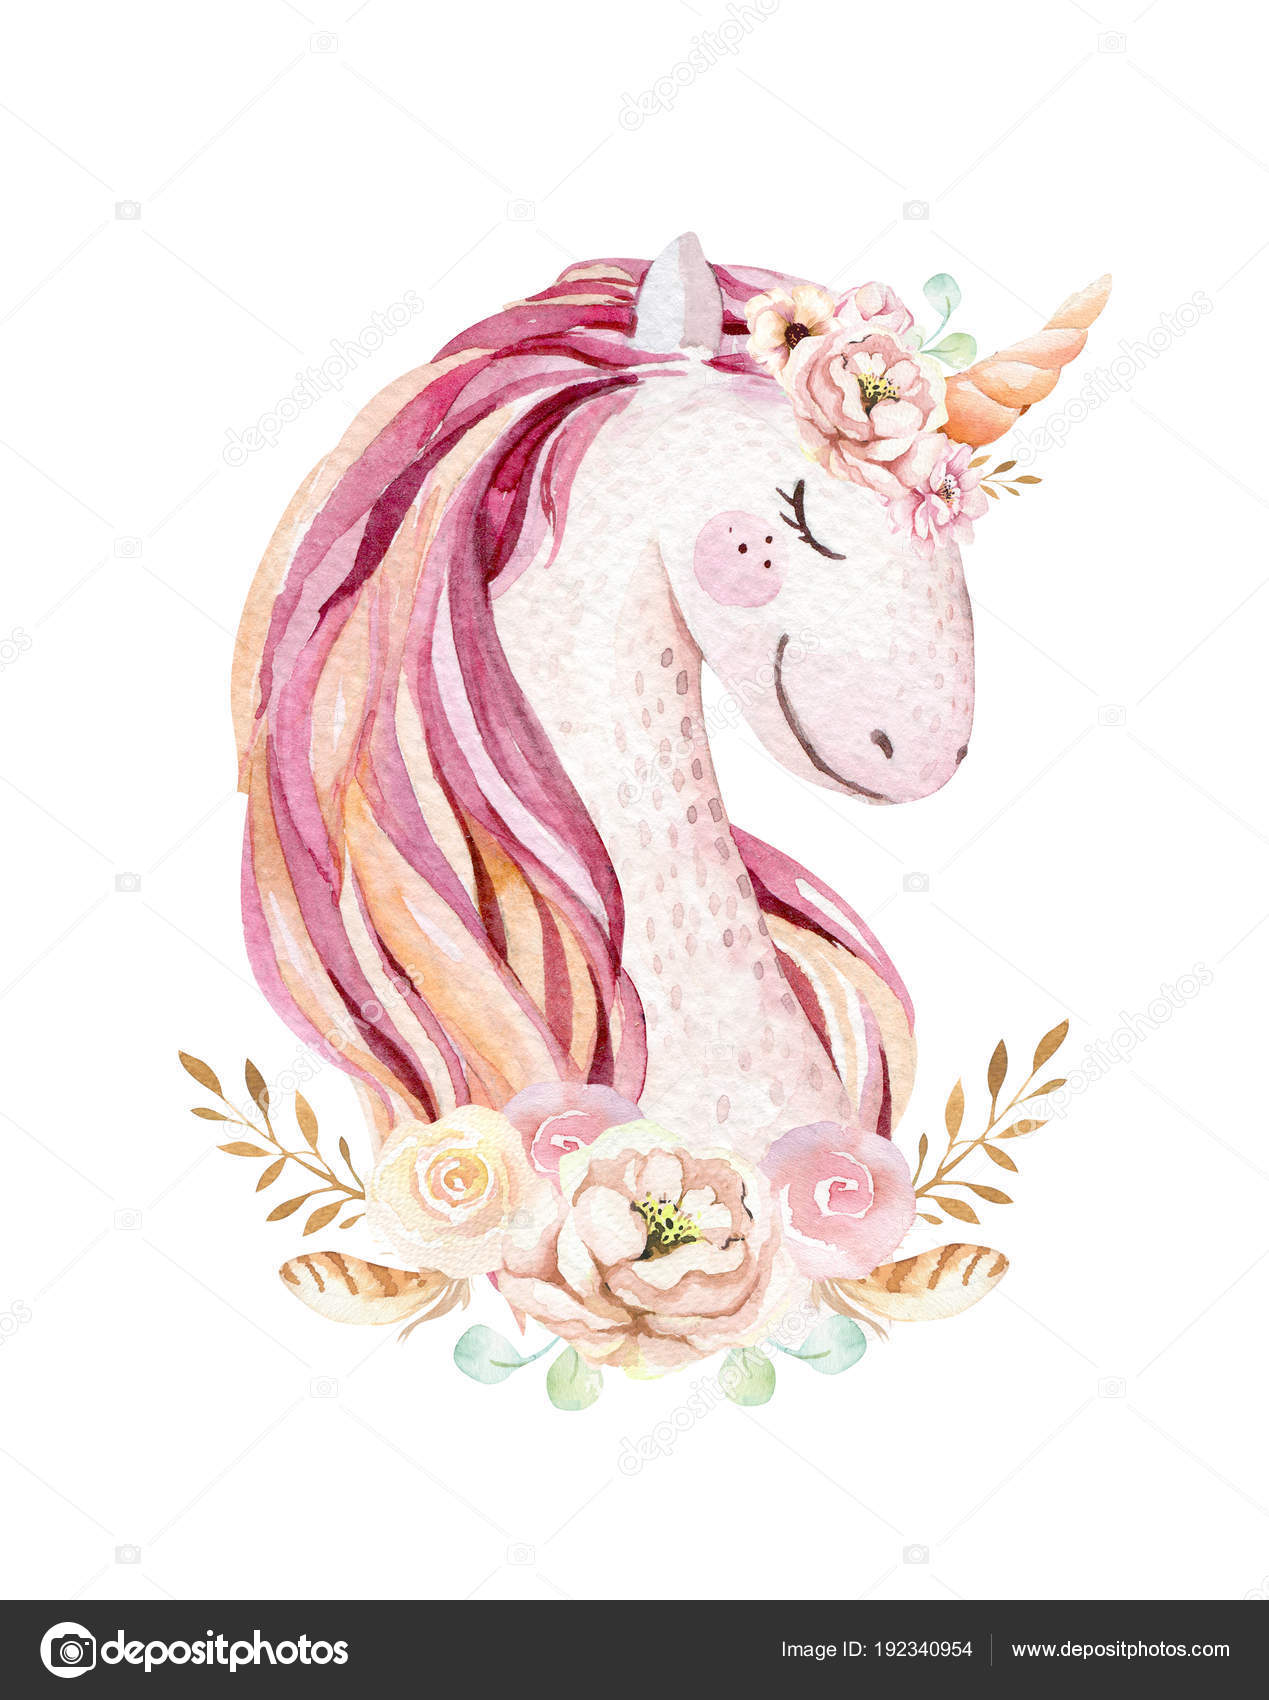 Isolated cute watercolor unicorn clipart with flowers nursery isolated cute watercolor unicorn clipart nursery unicorns illustration princess rainbow poster trendy pink cartoon pony horse photo by mykef mightylinksfo